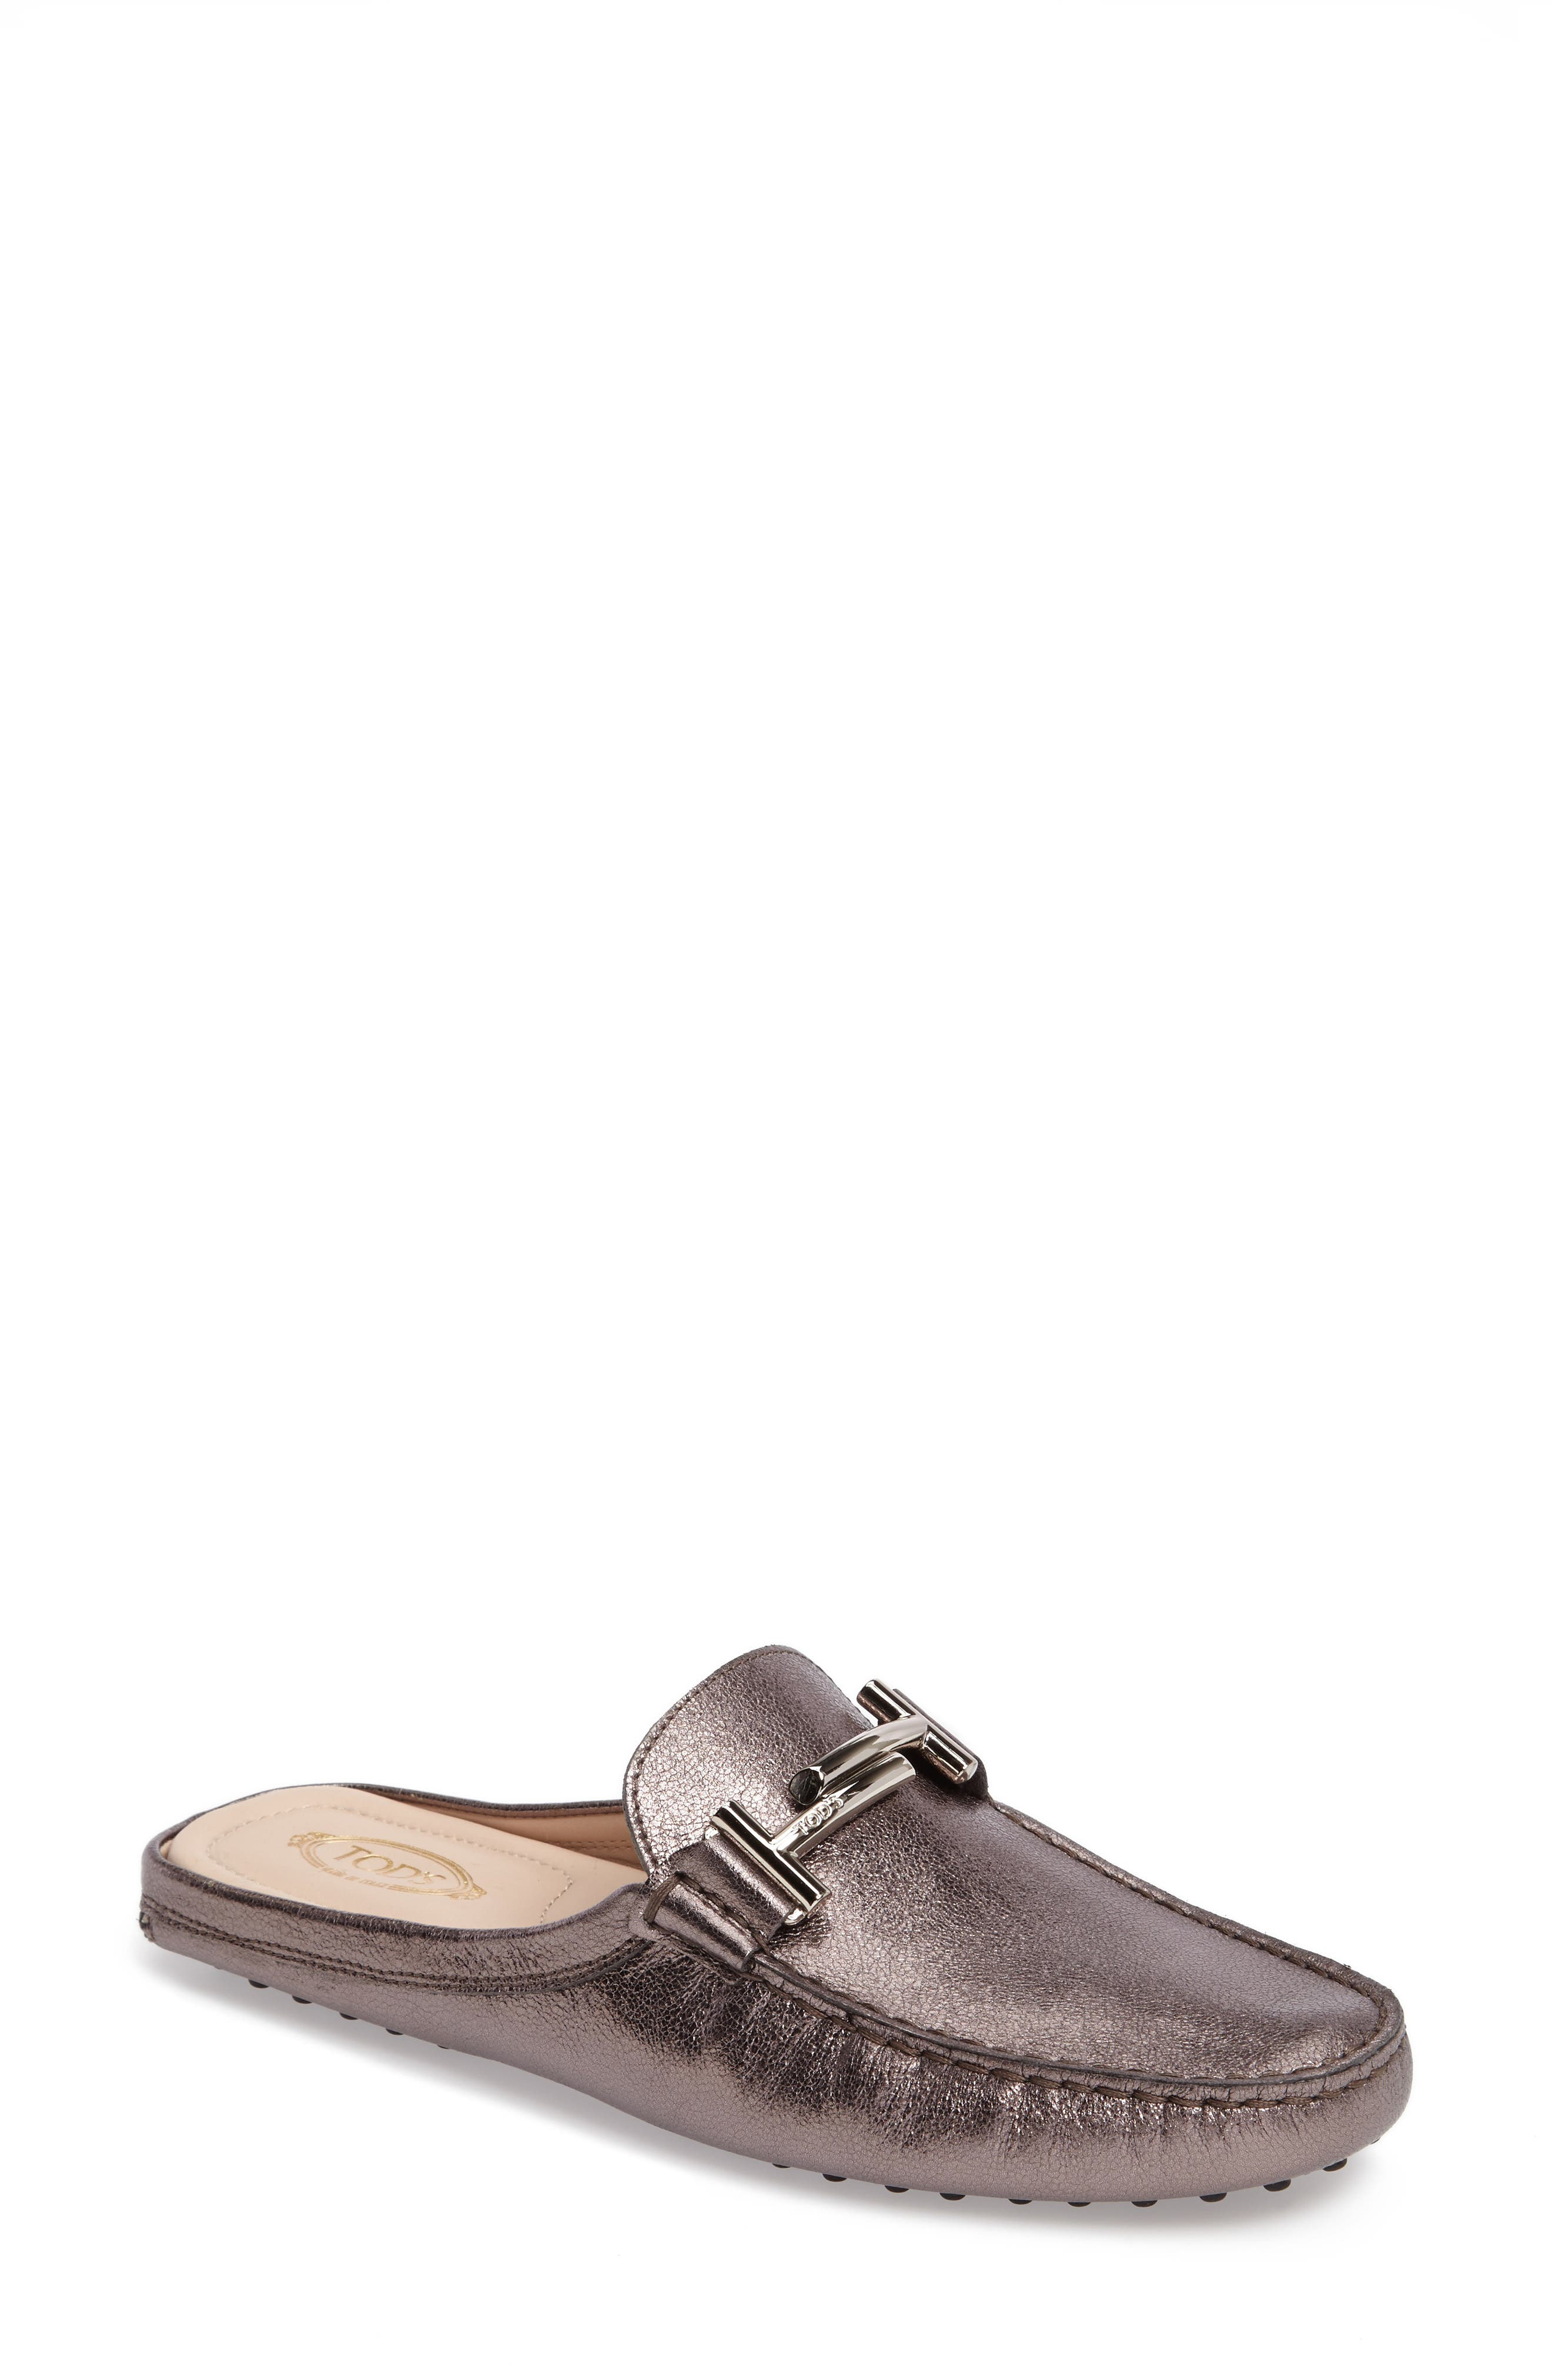 Main Image - Tod's Gommino Double-T Loafer Mule (Women)